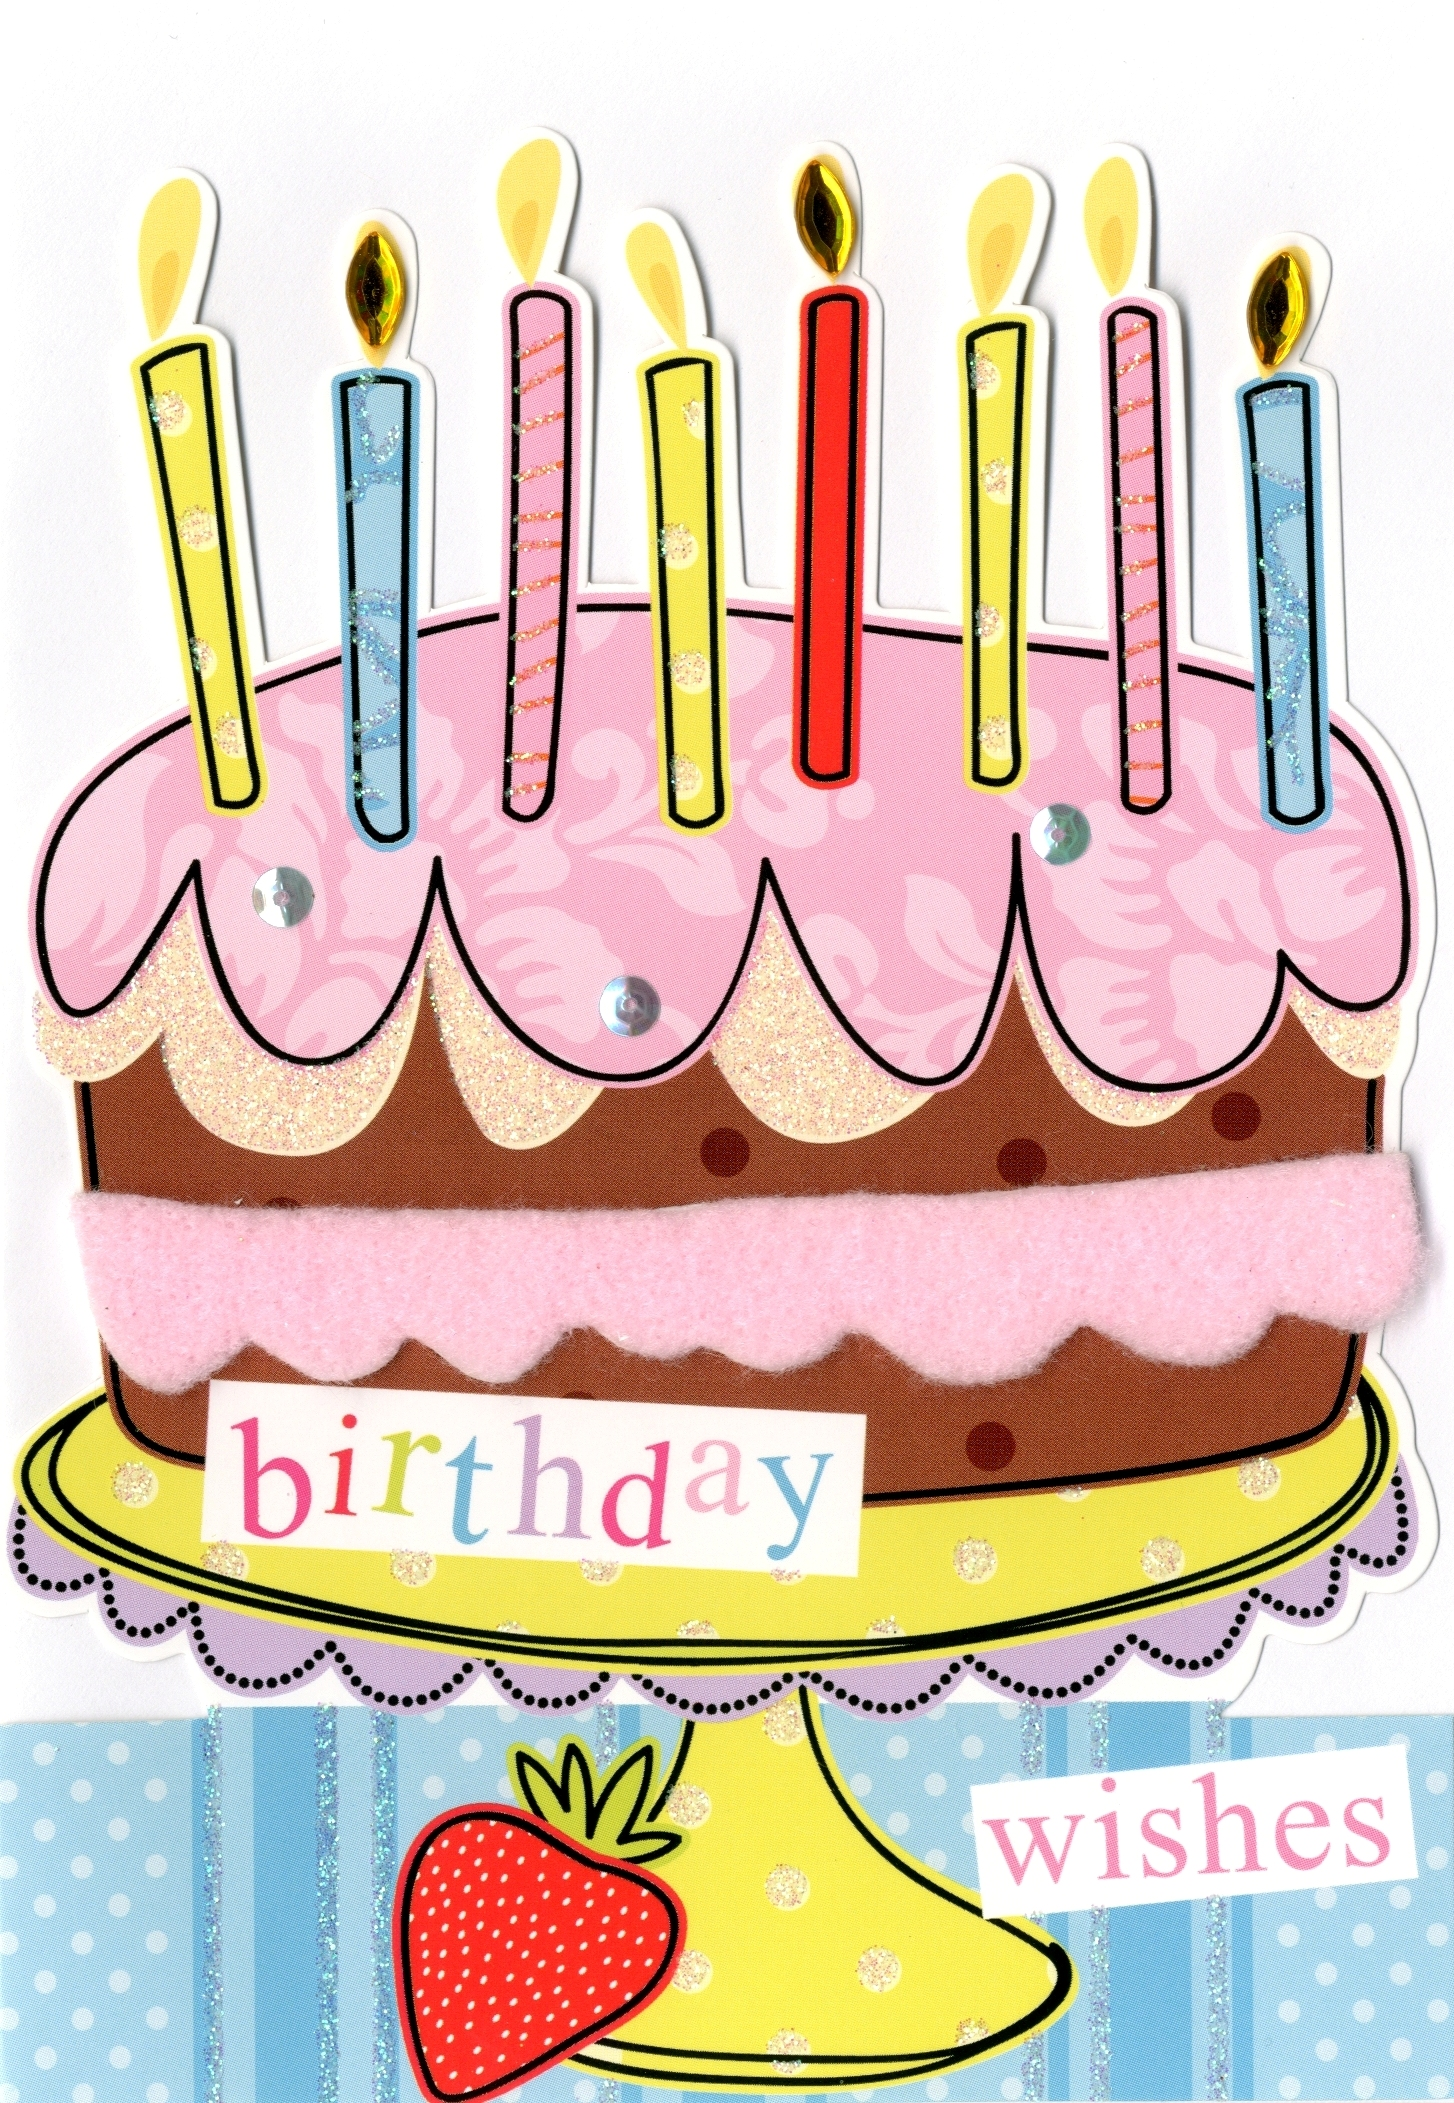 Cake Birthday Wishes Greeting Card Cards Love Kates